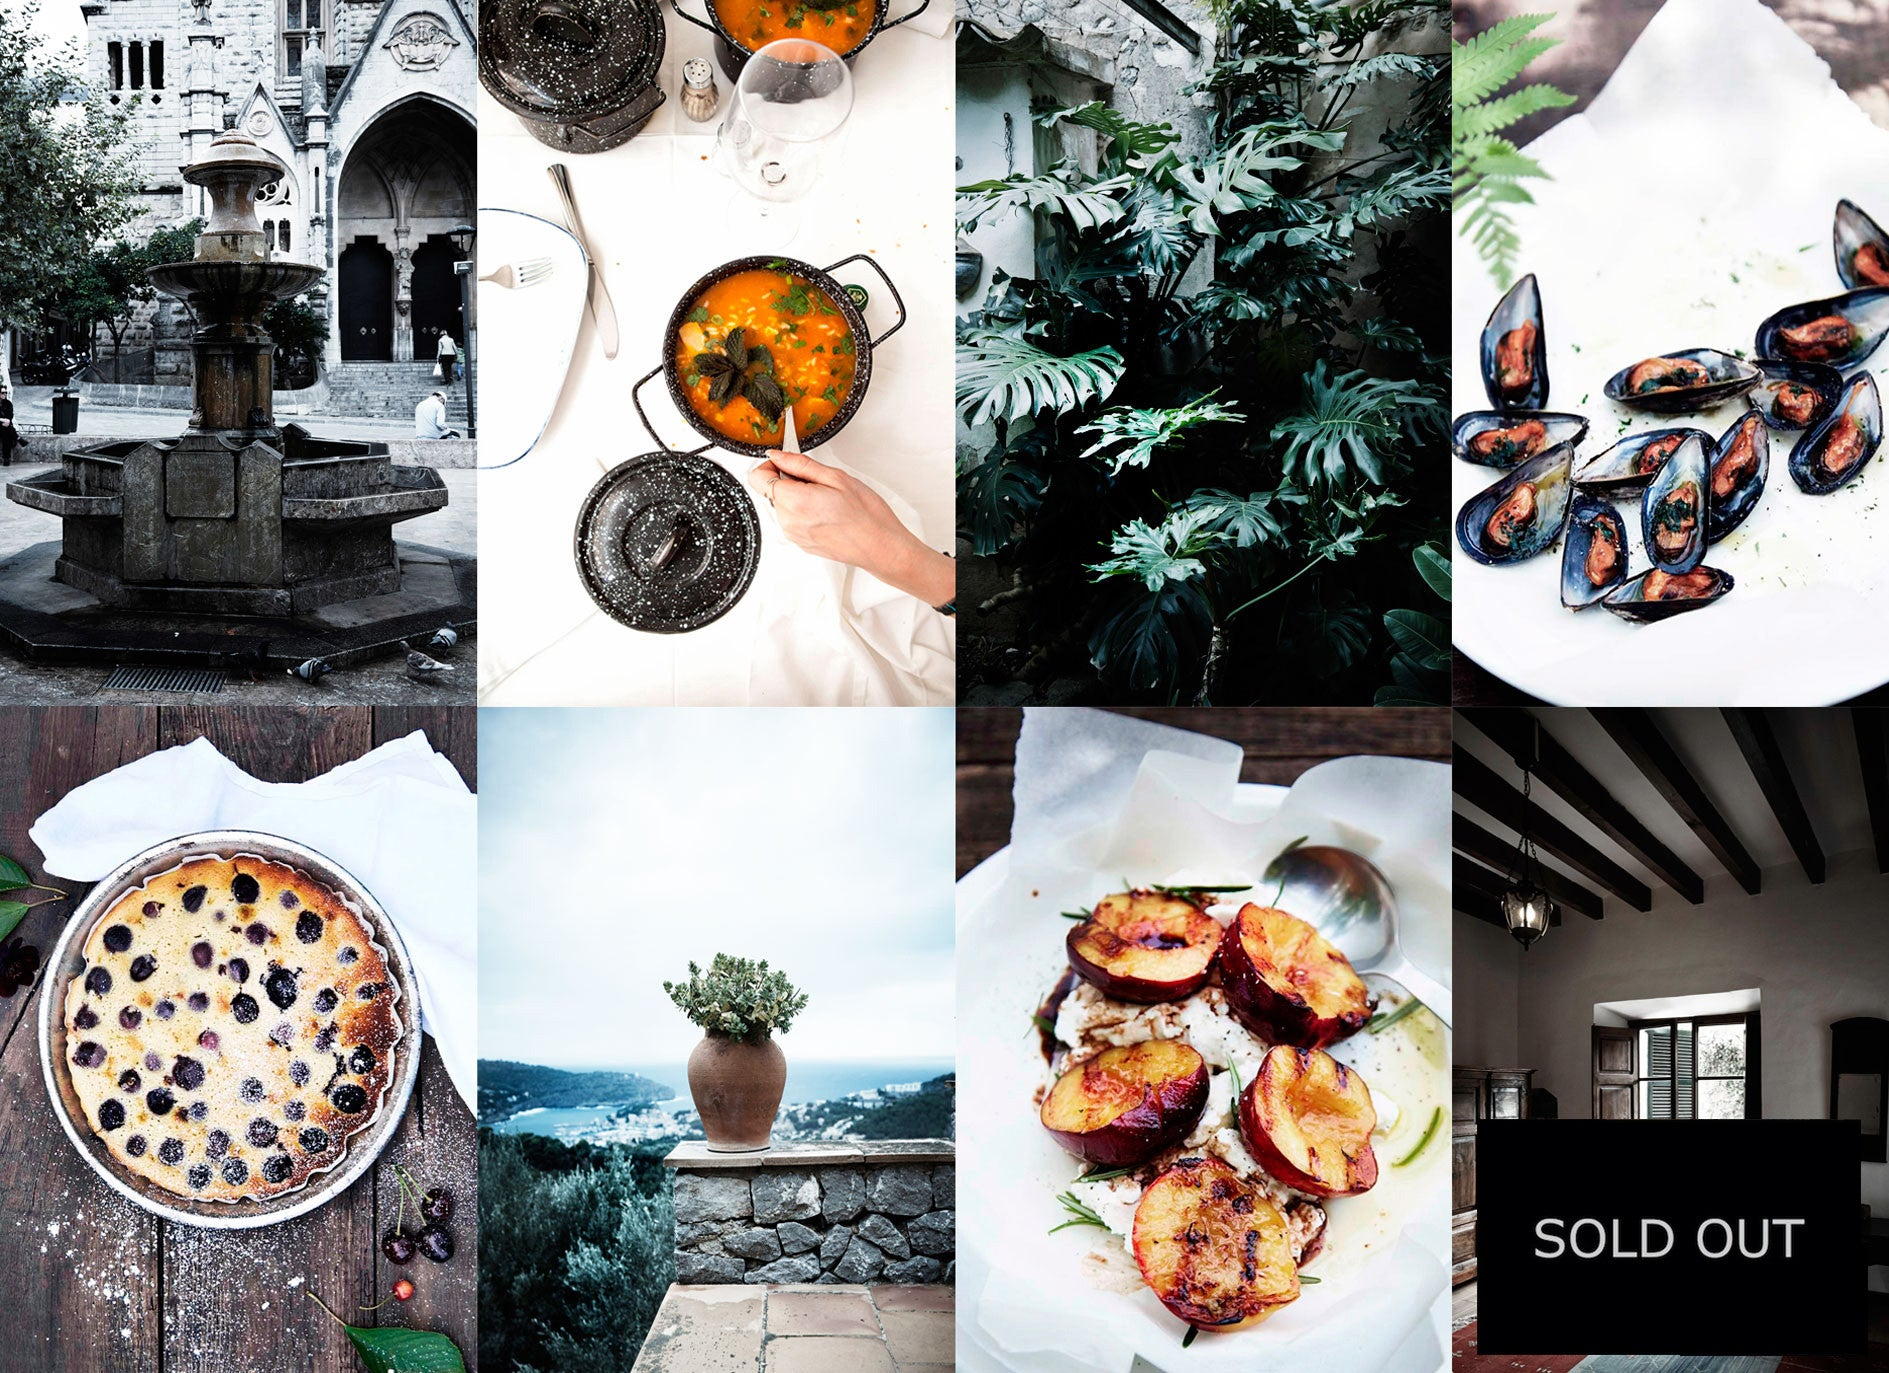 Mallorca | Mallorca in Spring | How to tell captivating food & travel stories | a photography, visual storytelling & styling retreat | April 26th-30th 2016